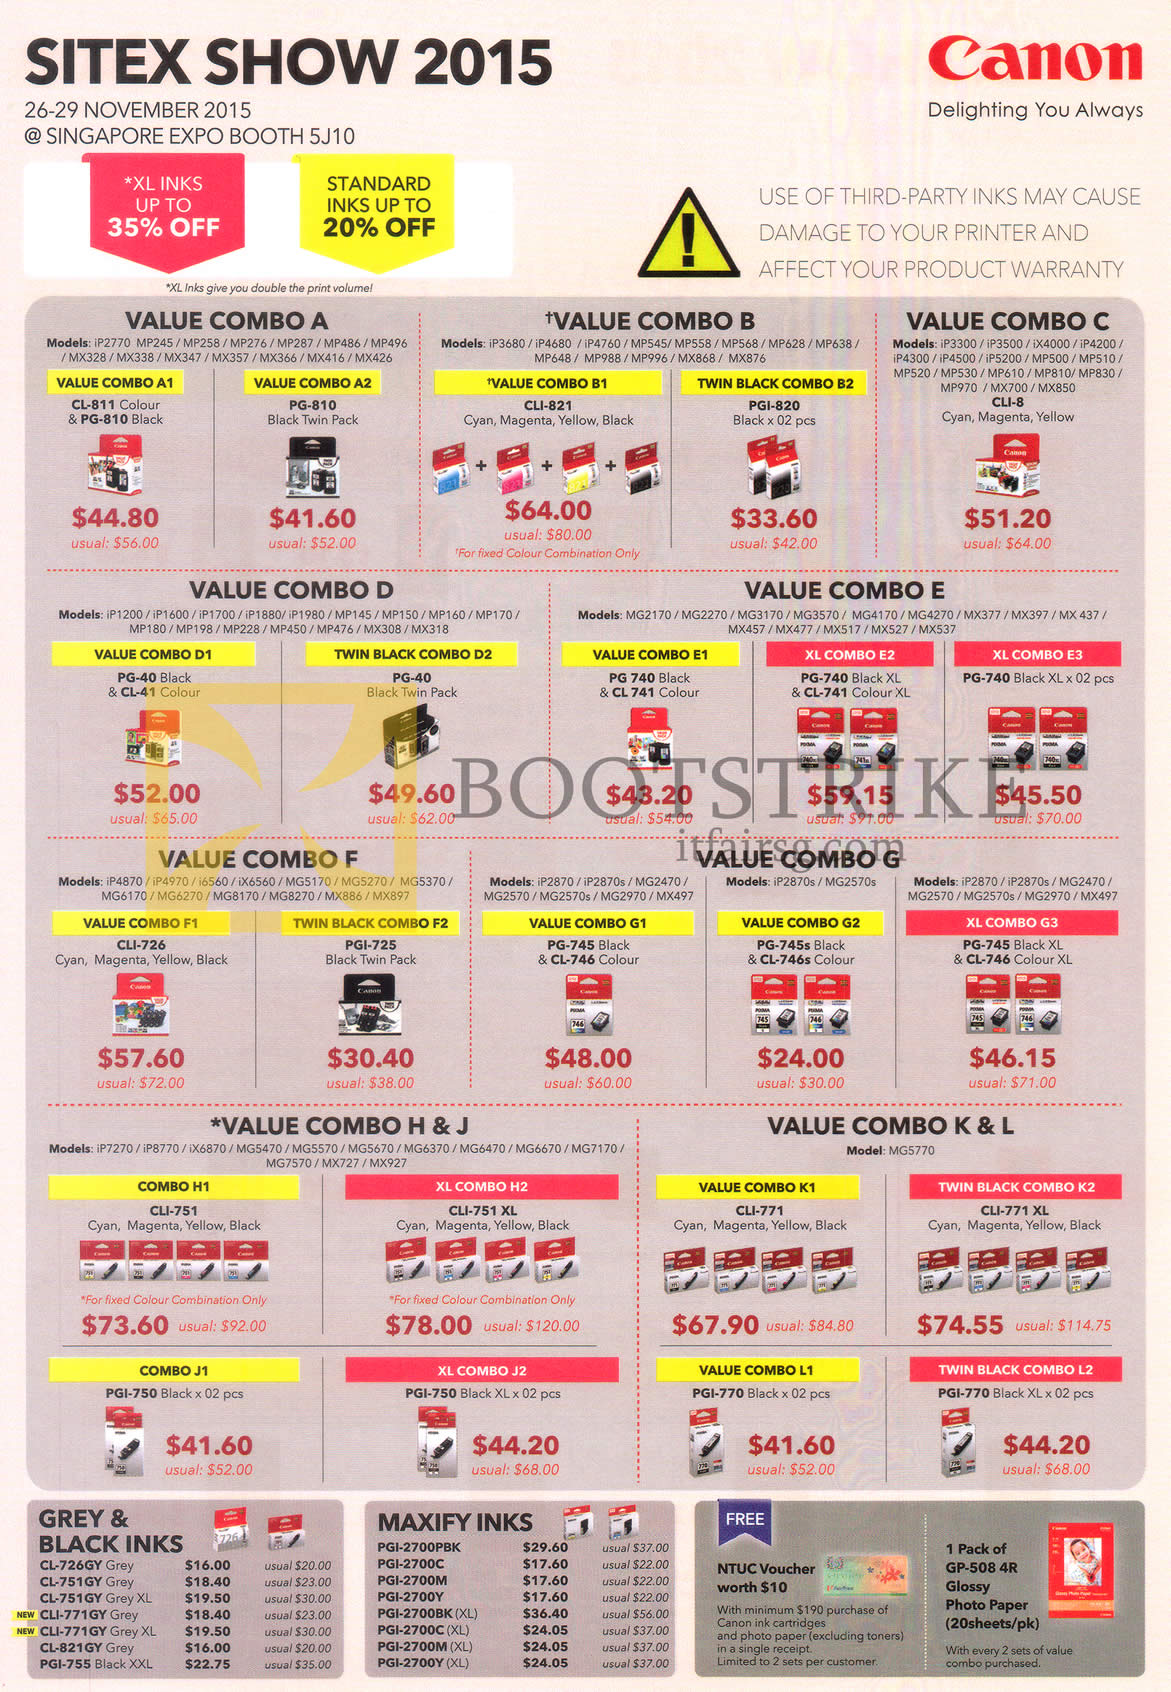 SITEX 2015 price list image brochure of Canon Cartridges Value Combos A, B, C, D, E, F, G, H, J, K, L, Grey, Black Inks, Maxify Inks